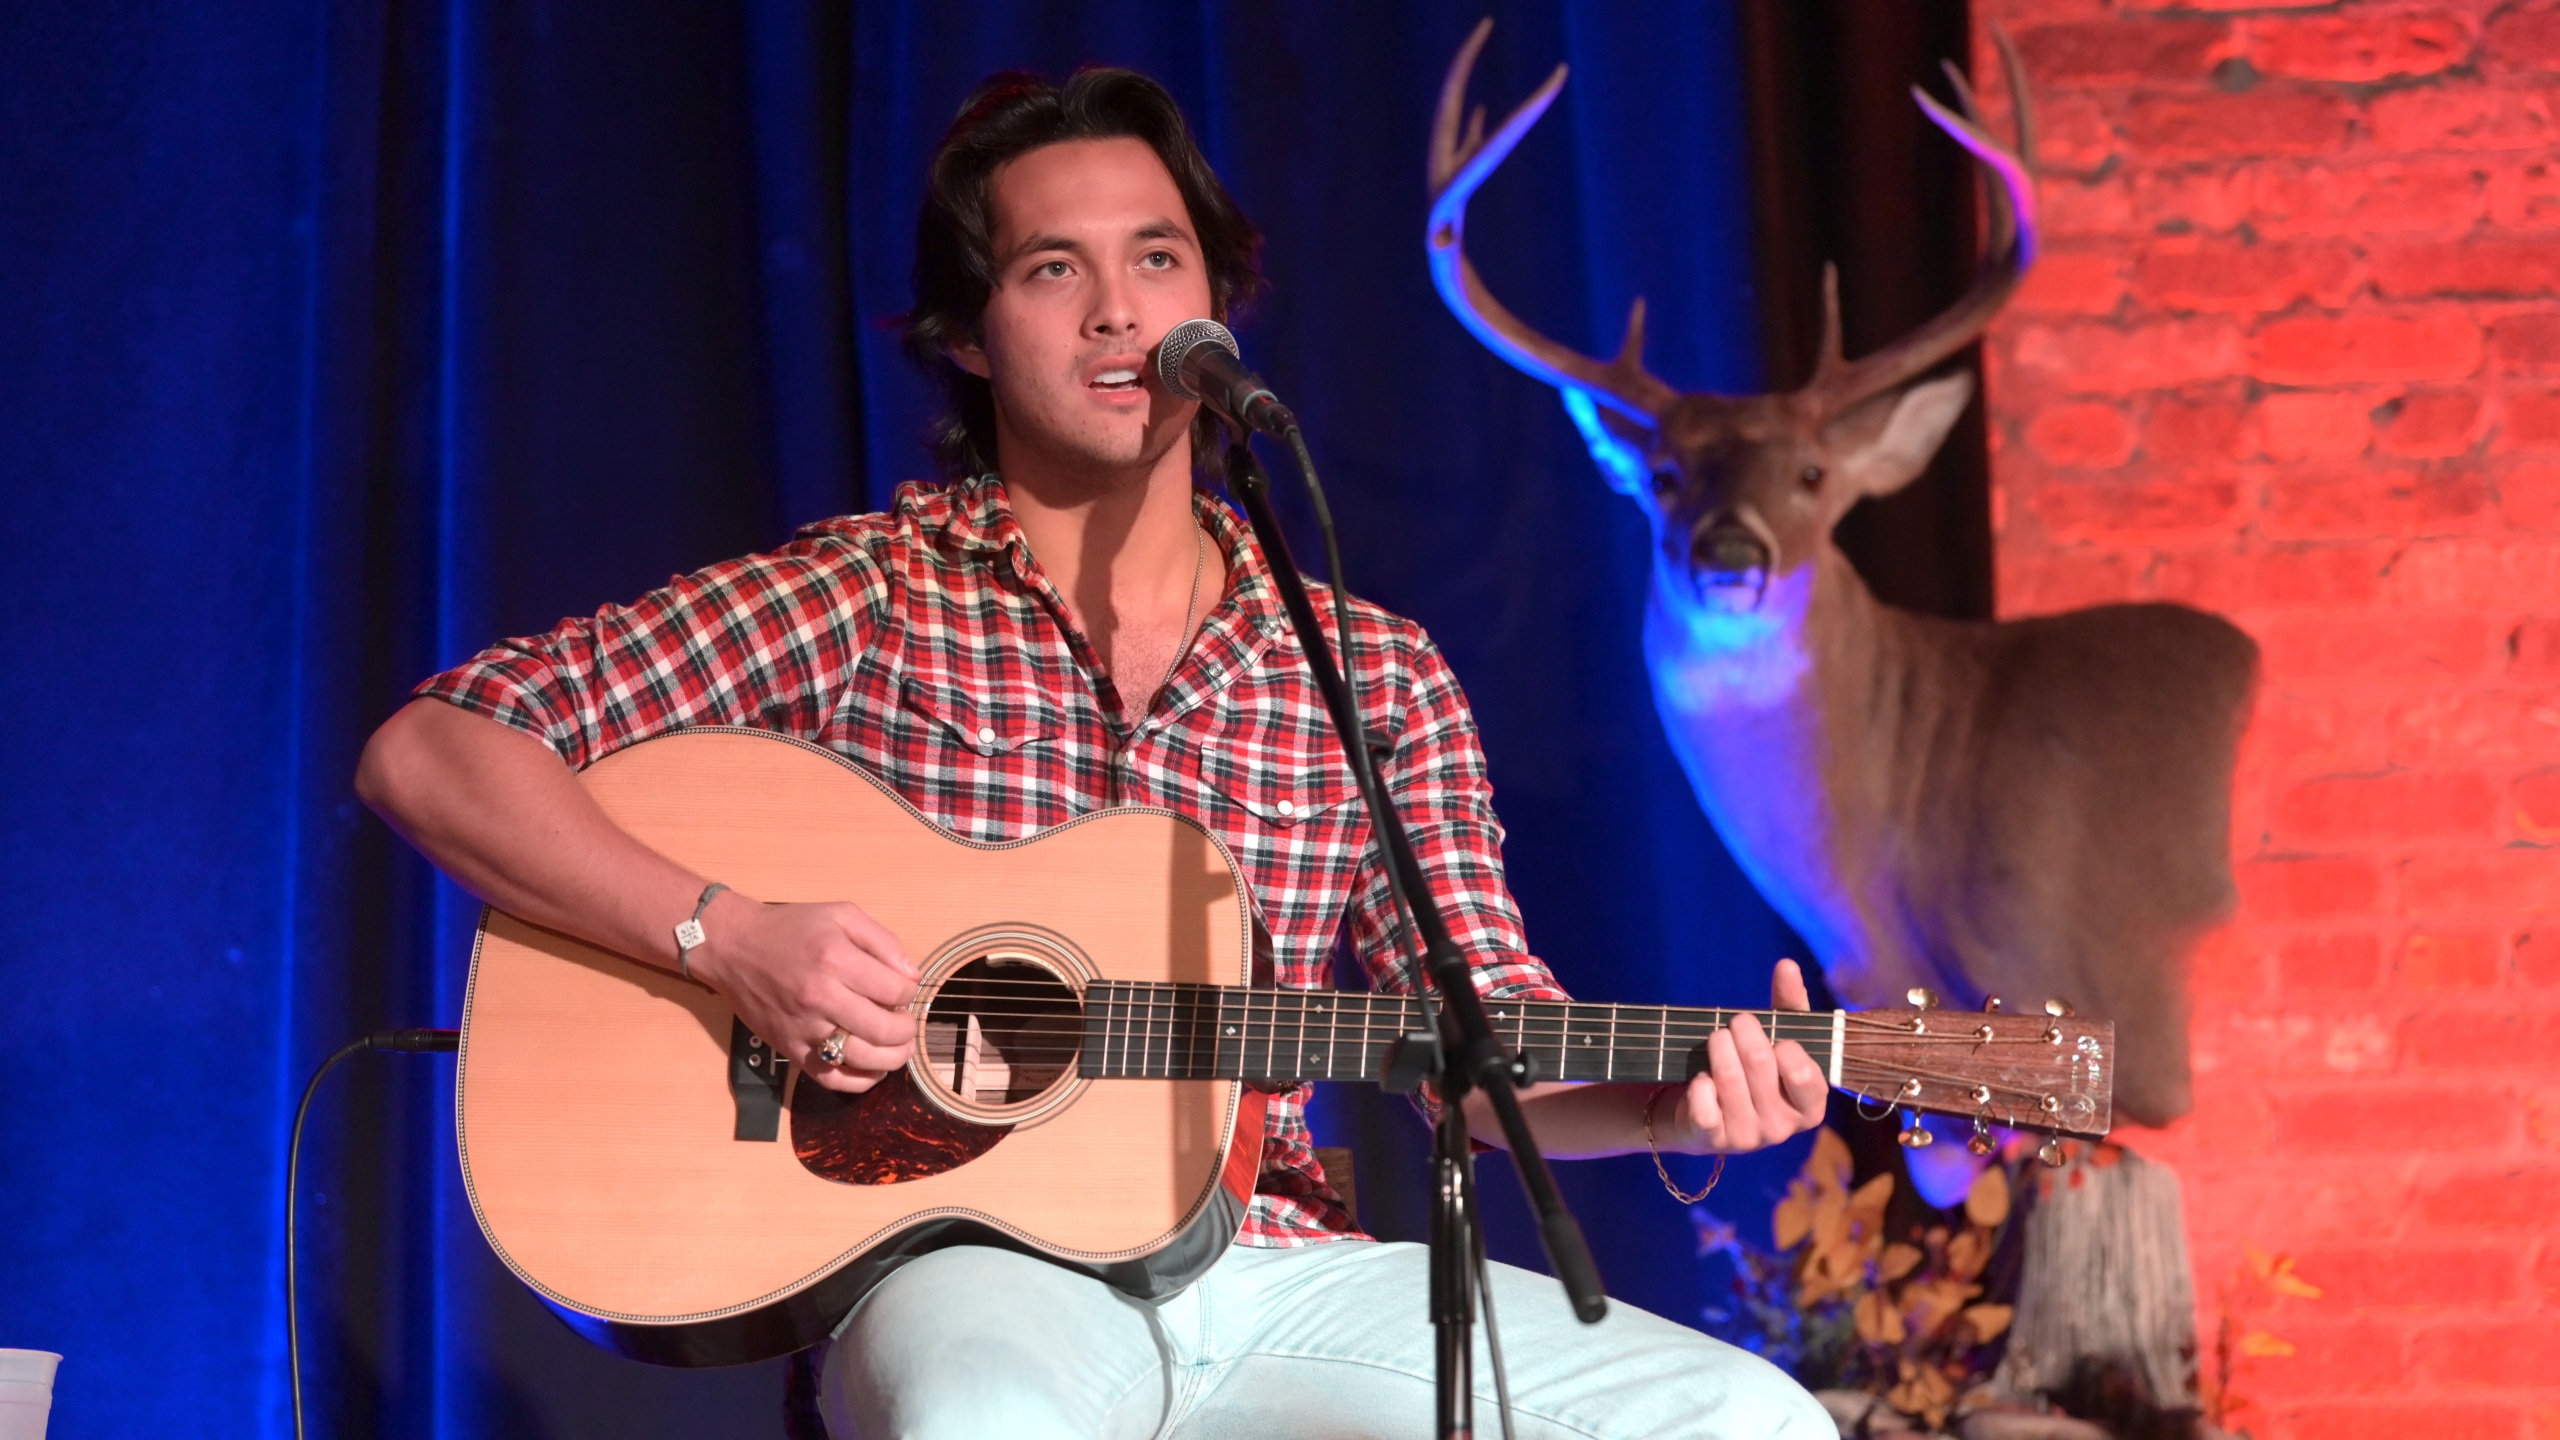 NASHVILLE, TENNESSEE - OCTOBER 06: Singer & songwriter Laine Hardy performs during Country Outdoors Writers Round at The Listening Room Cafe on October 06, 2020 in Nashville, Tennessee. (Photo by Jason Kempin/Getty Images)